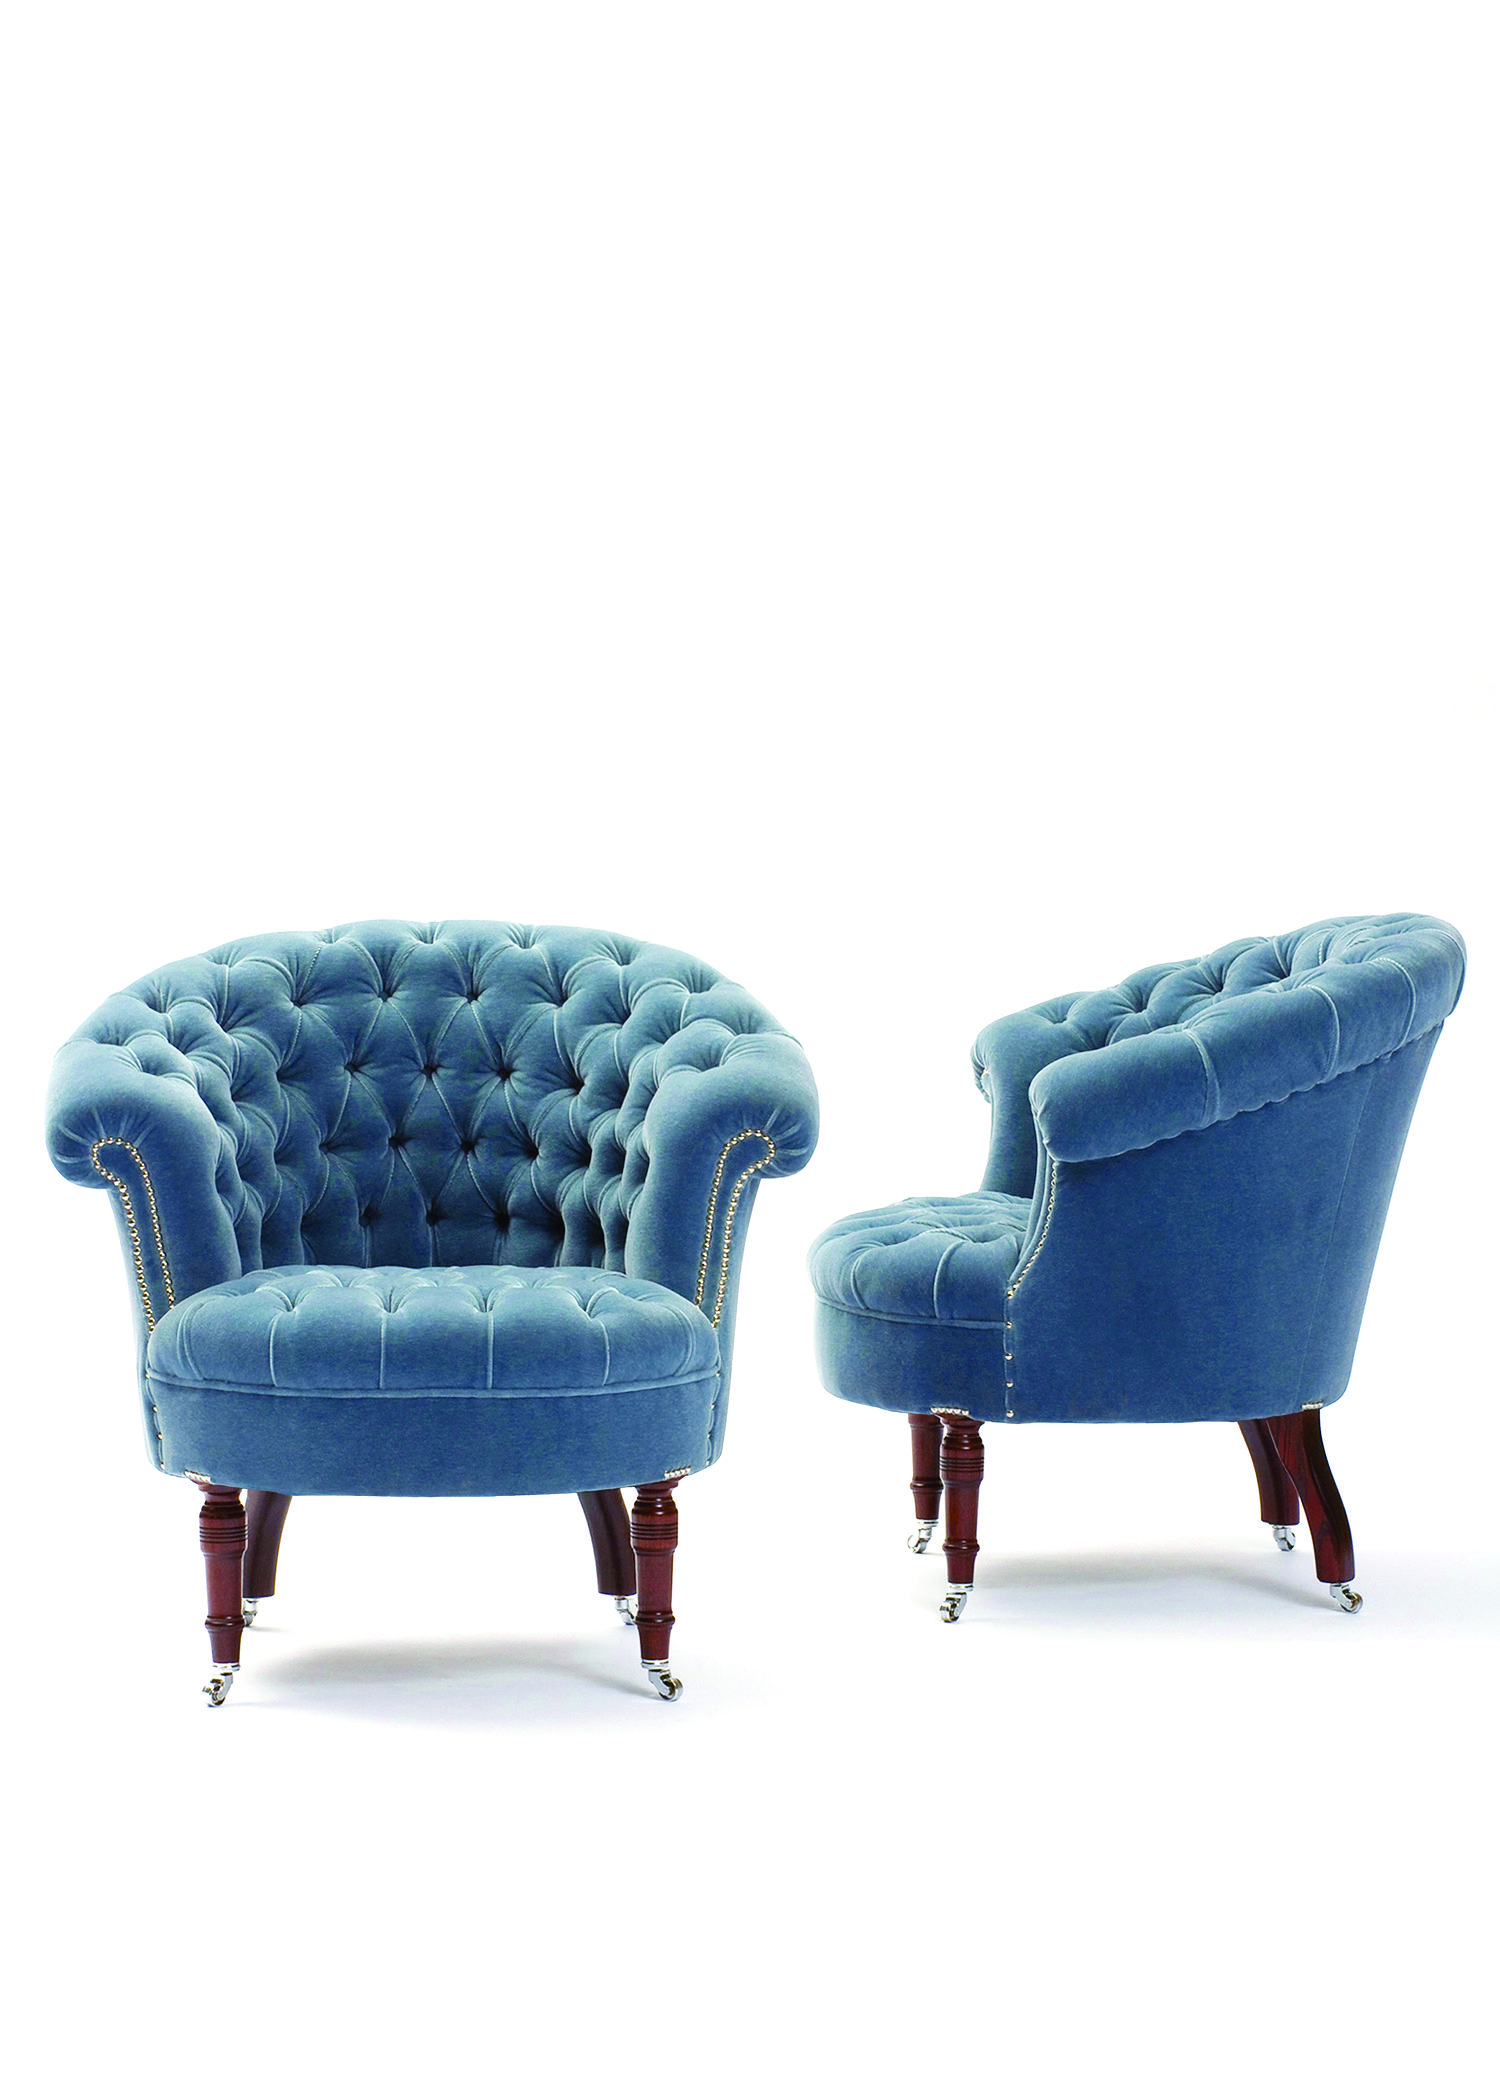 CLASSIC CHAIRS George Smith Airdrie Chair in French Blue Mohair